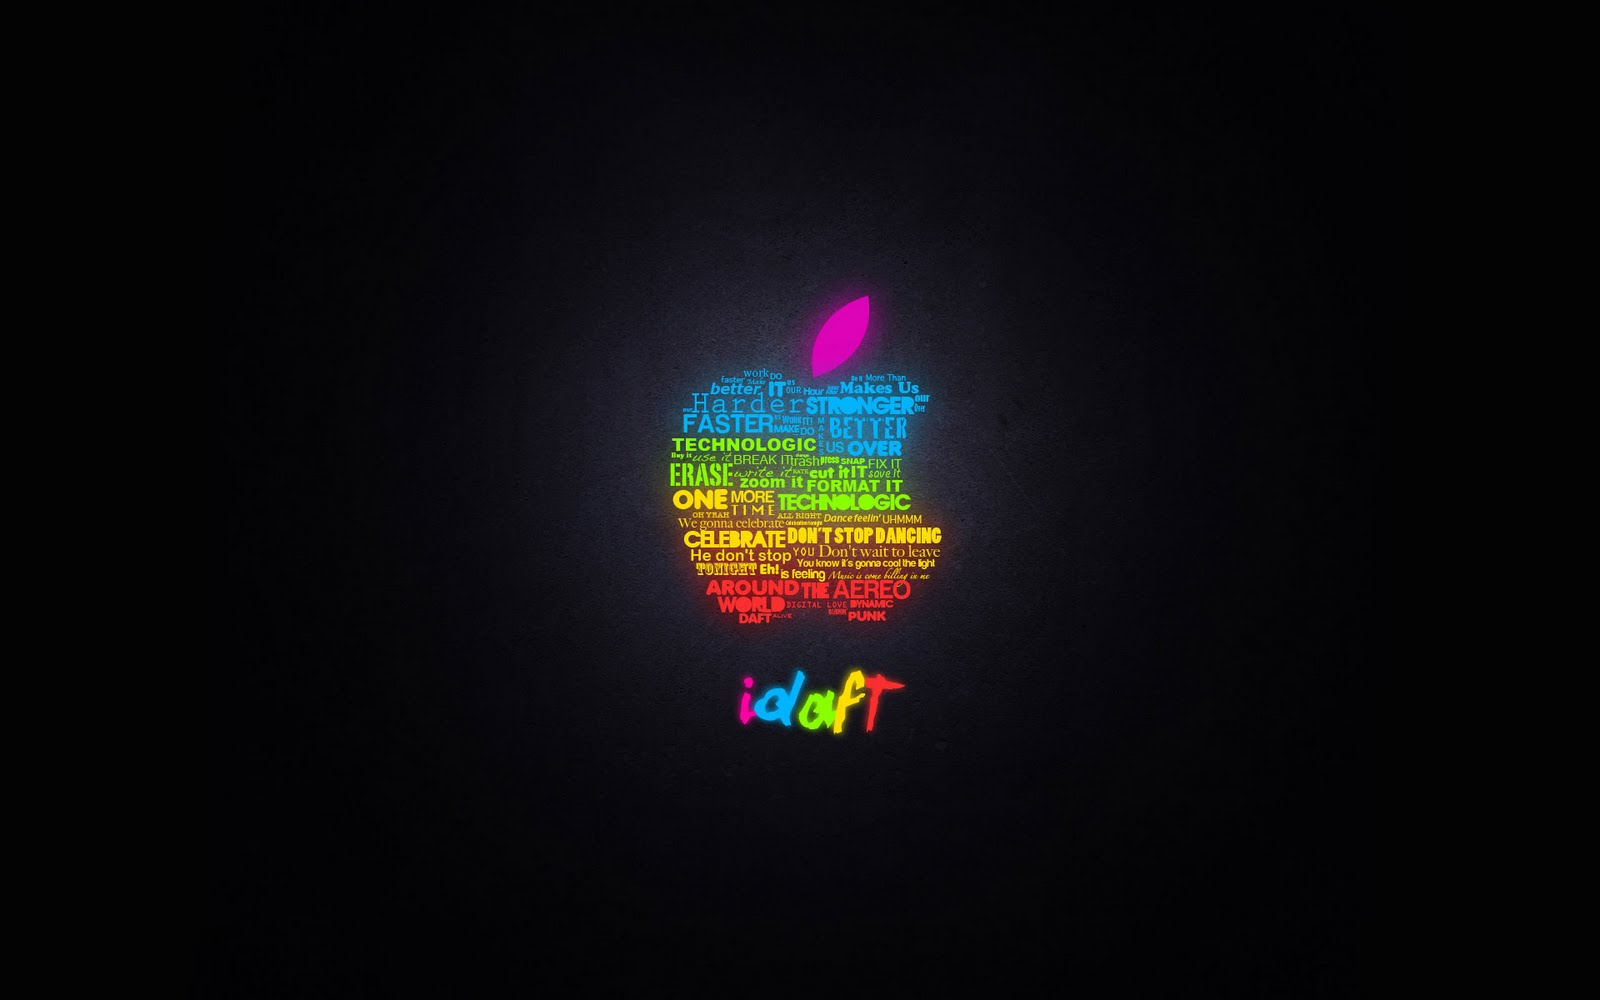 Hd wallpapers apple logo hd wallpapers for New cool images